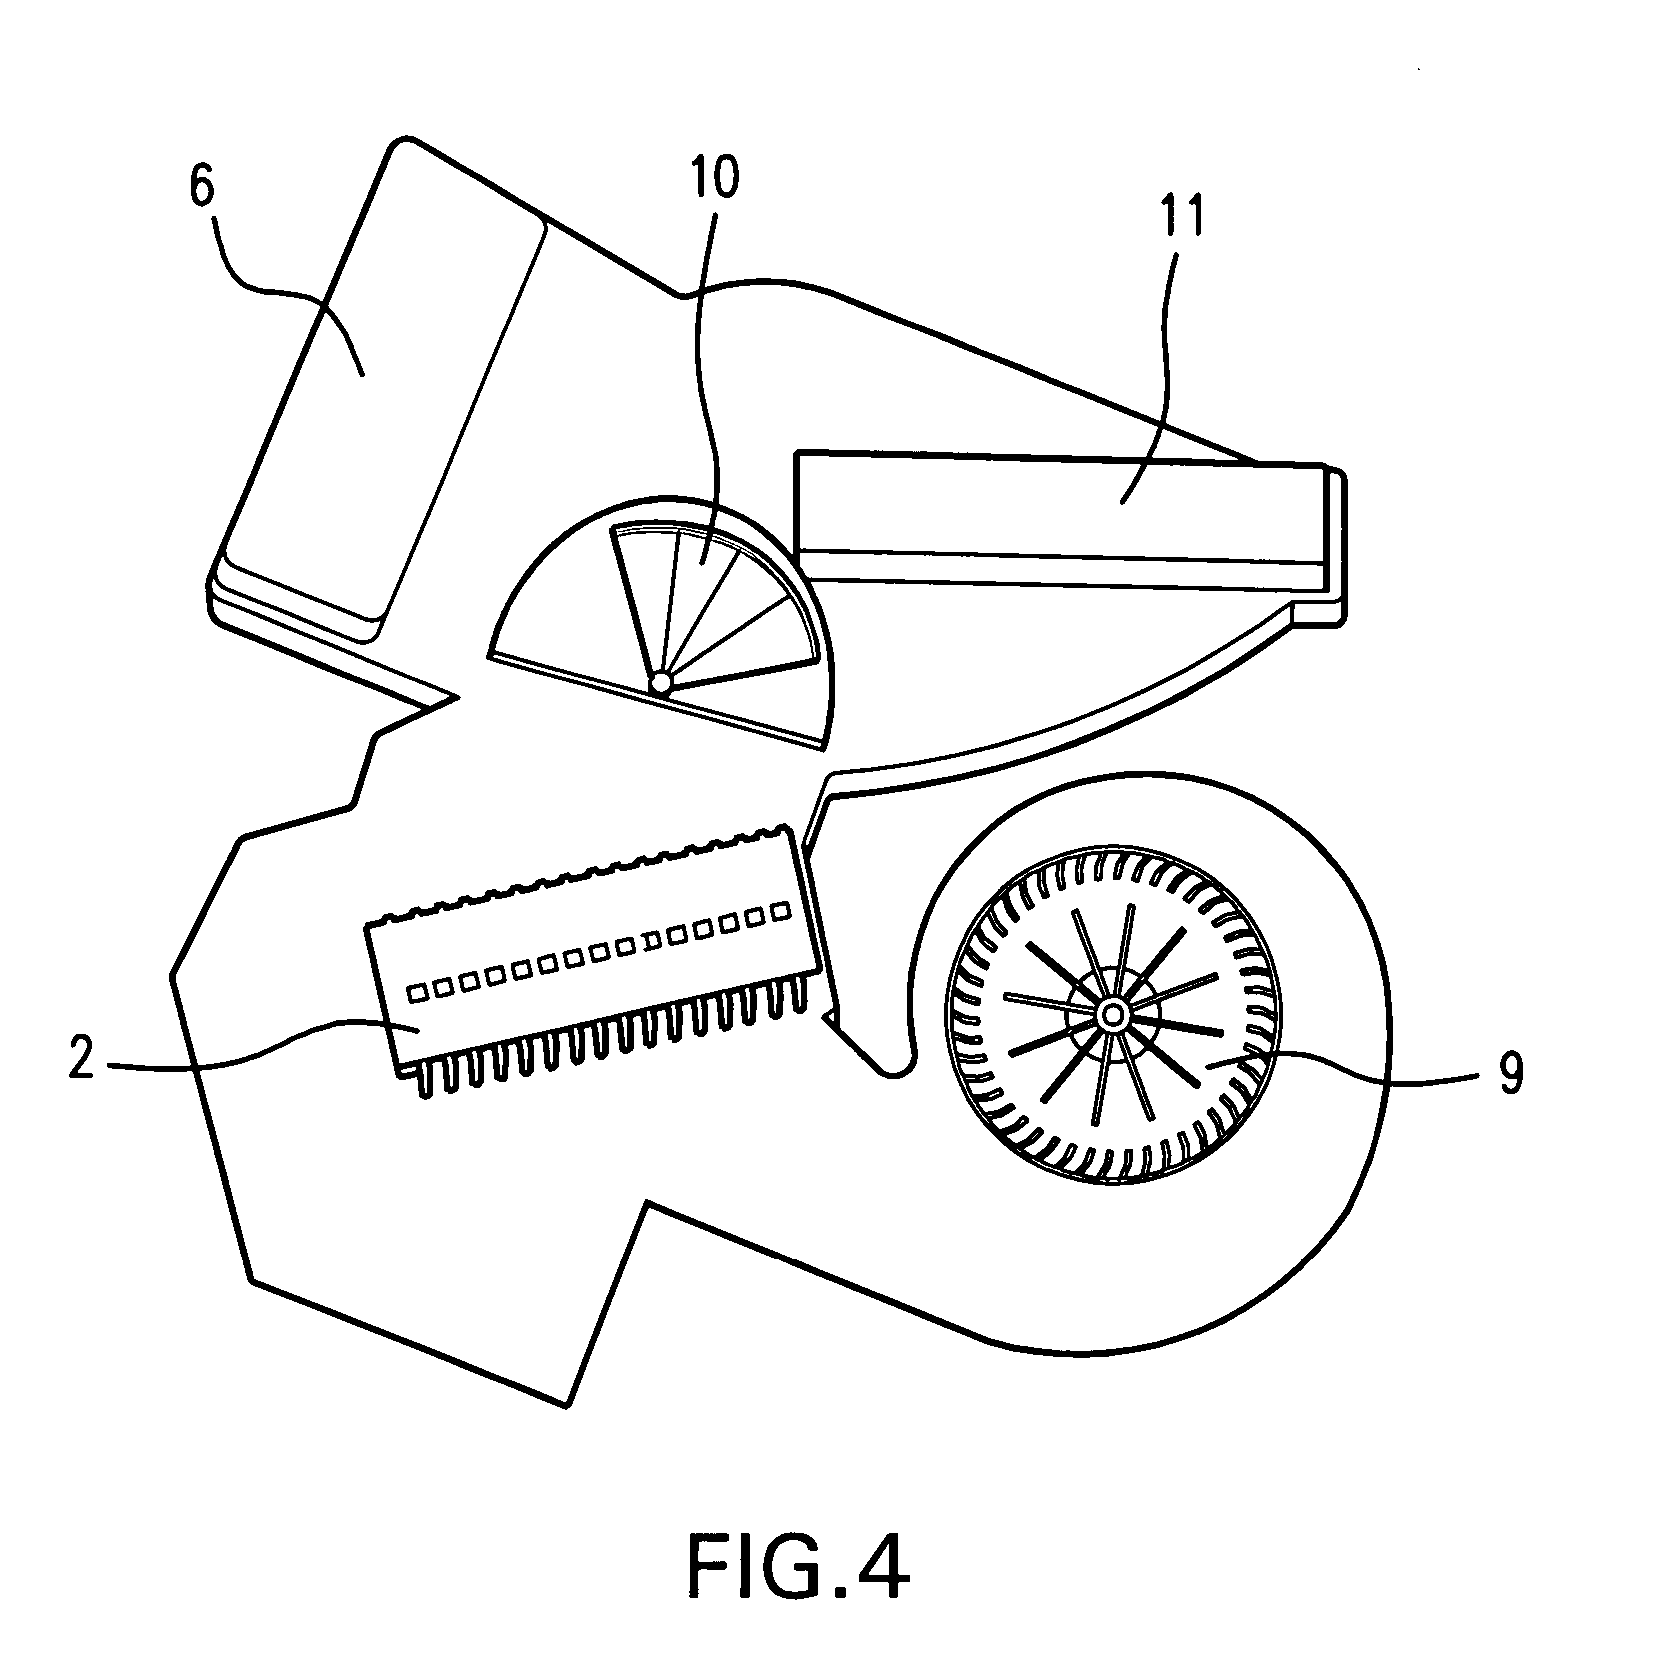 patent us  integrated vehicle hvac system  google patents, wiring diagram